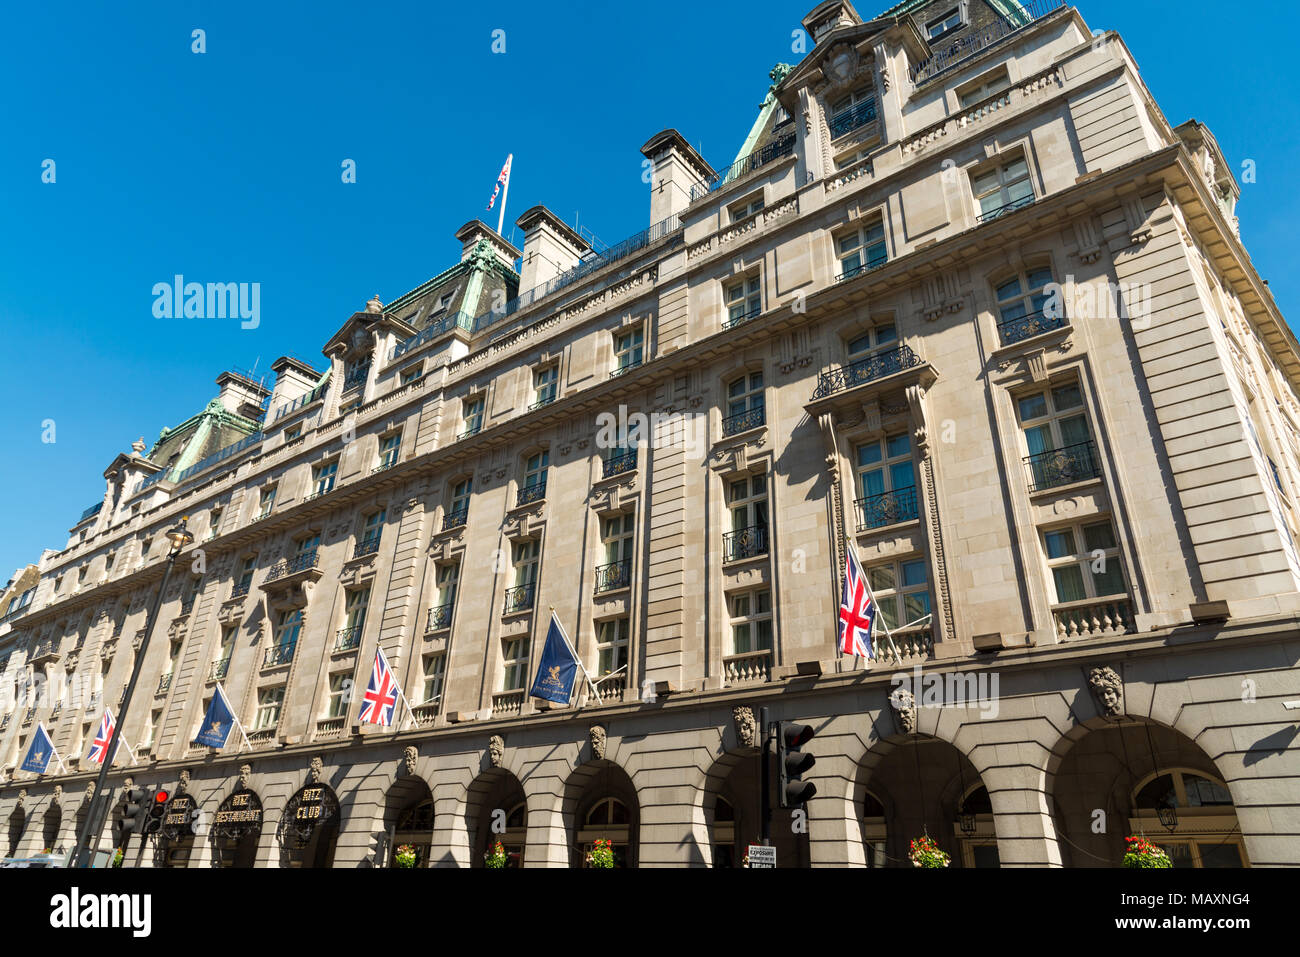 The Ritz, Piccadilly, London, UK - Stock Image